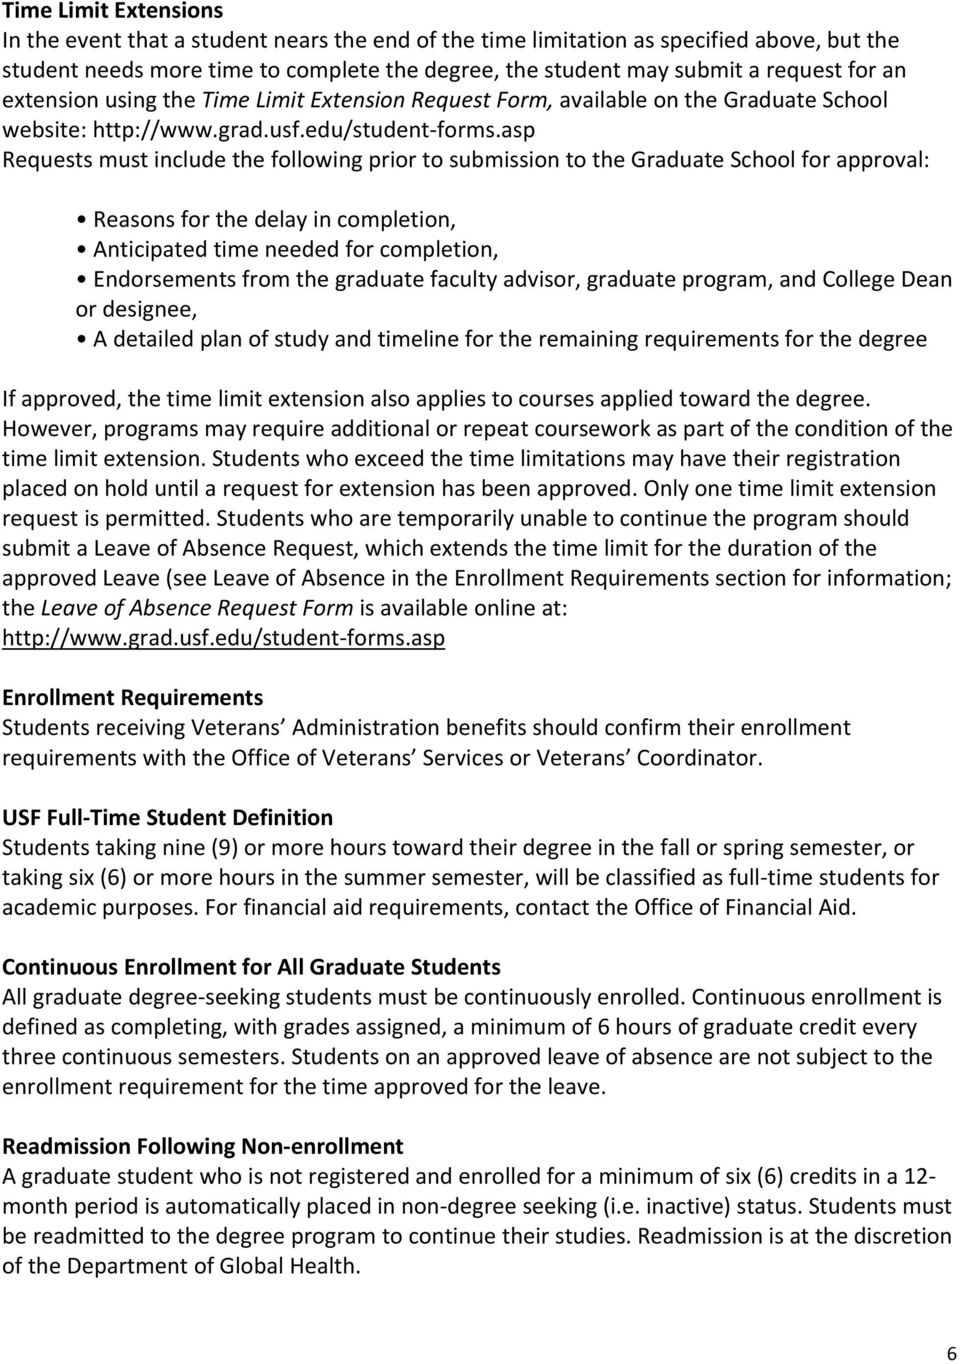 asp Requests must include the following prior to submission to the Graduate School for approval: Reasons for the delay in completion, Anticipated time needed for completion, Endorsements from the